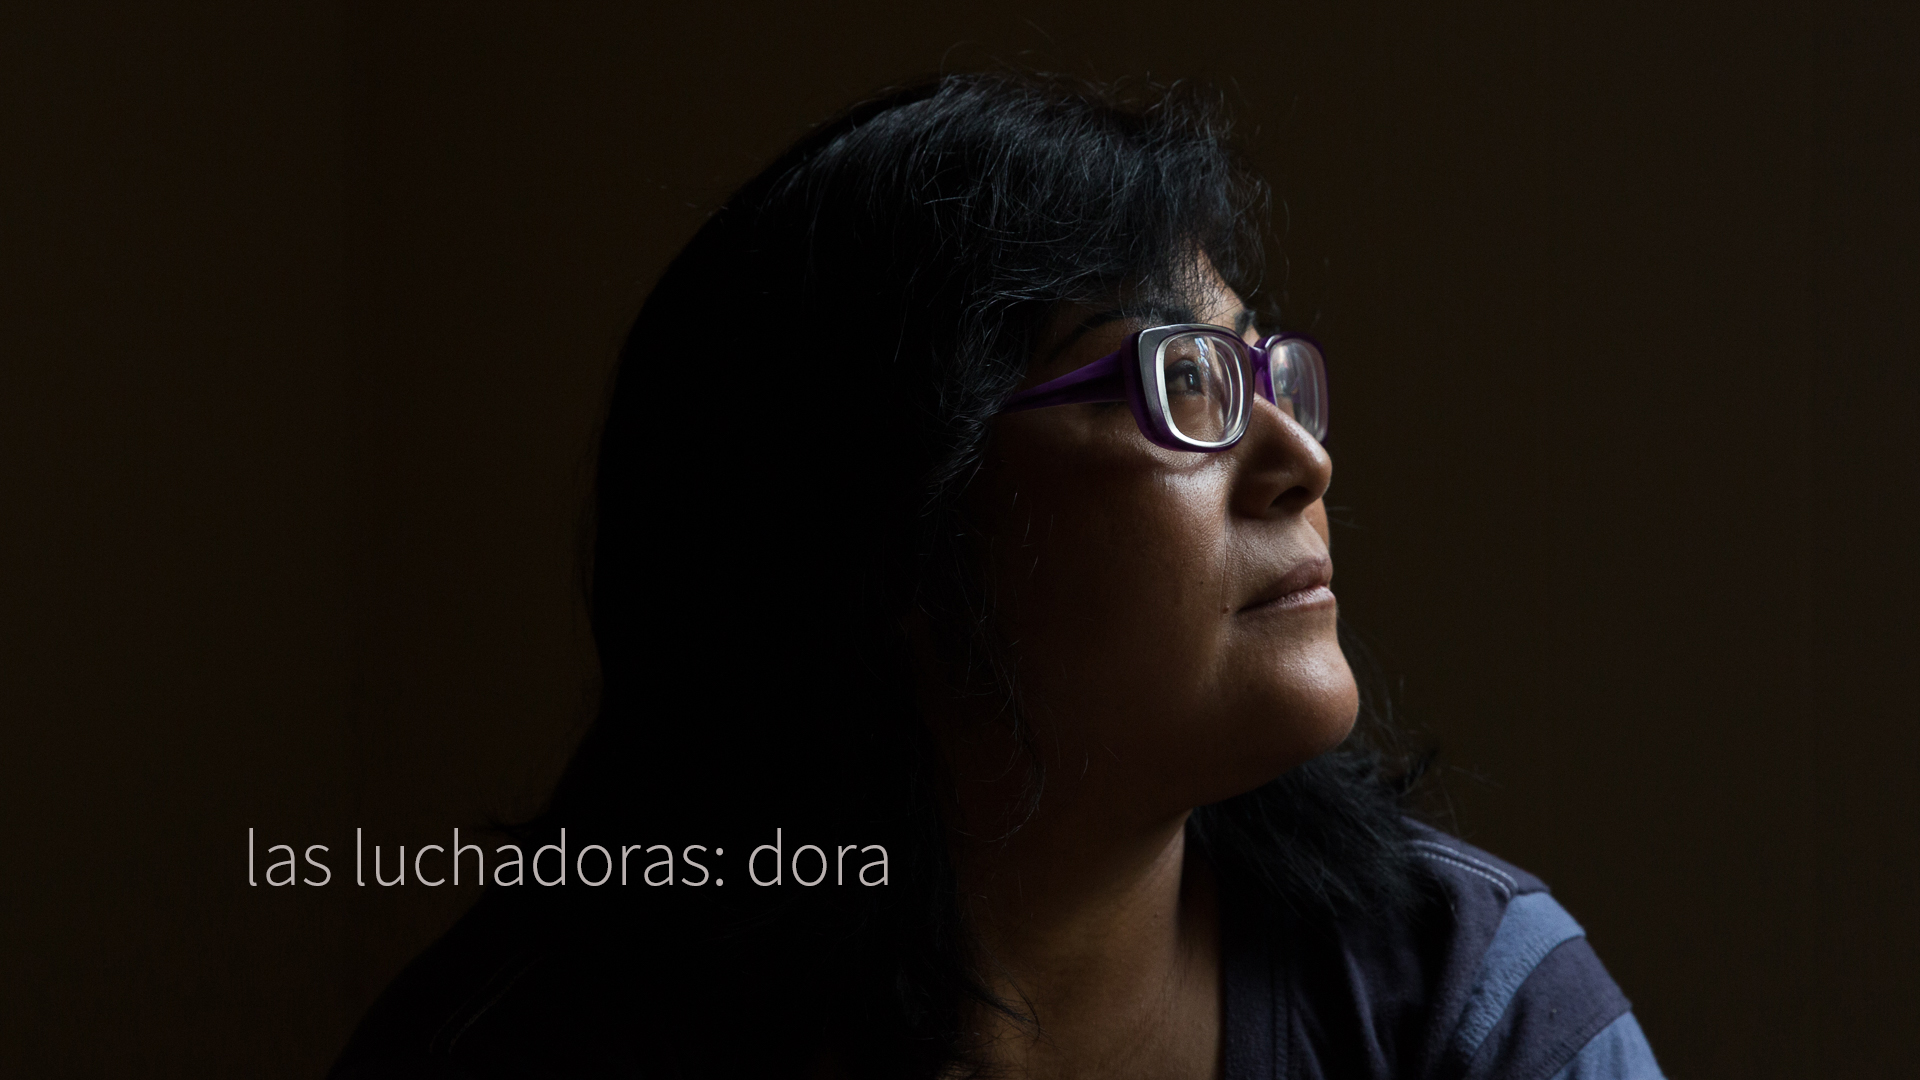 Dora, a strong leader of Trans Queer Pueblo in Phoenix, Arizona, fights for the rights of everyone, and particularly for LGBT migrant people of color, since the time her daughter came out as queer.  Dora, una líder fuerte de Trans Queer Pueblo en Phoenix, Arizona, lucha por los derechos de todo, especialmente los LGBT migrantes de color después de su hija salió del closet.